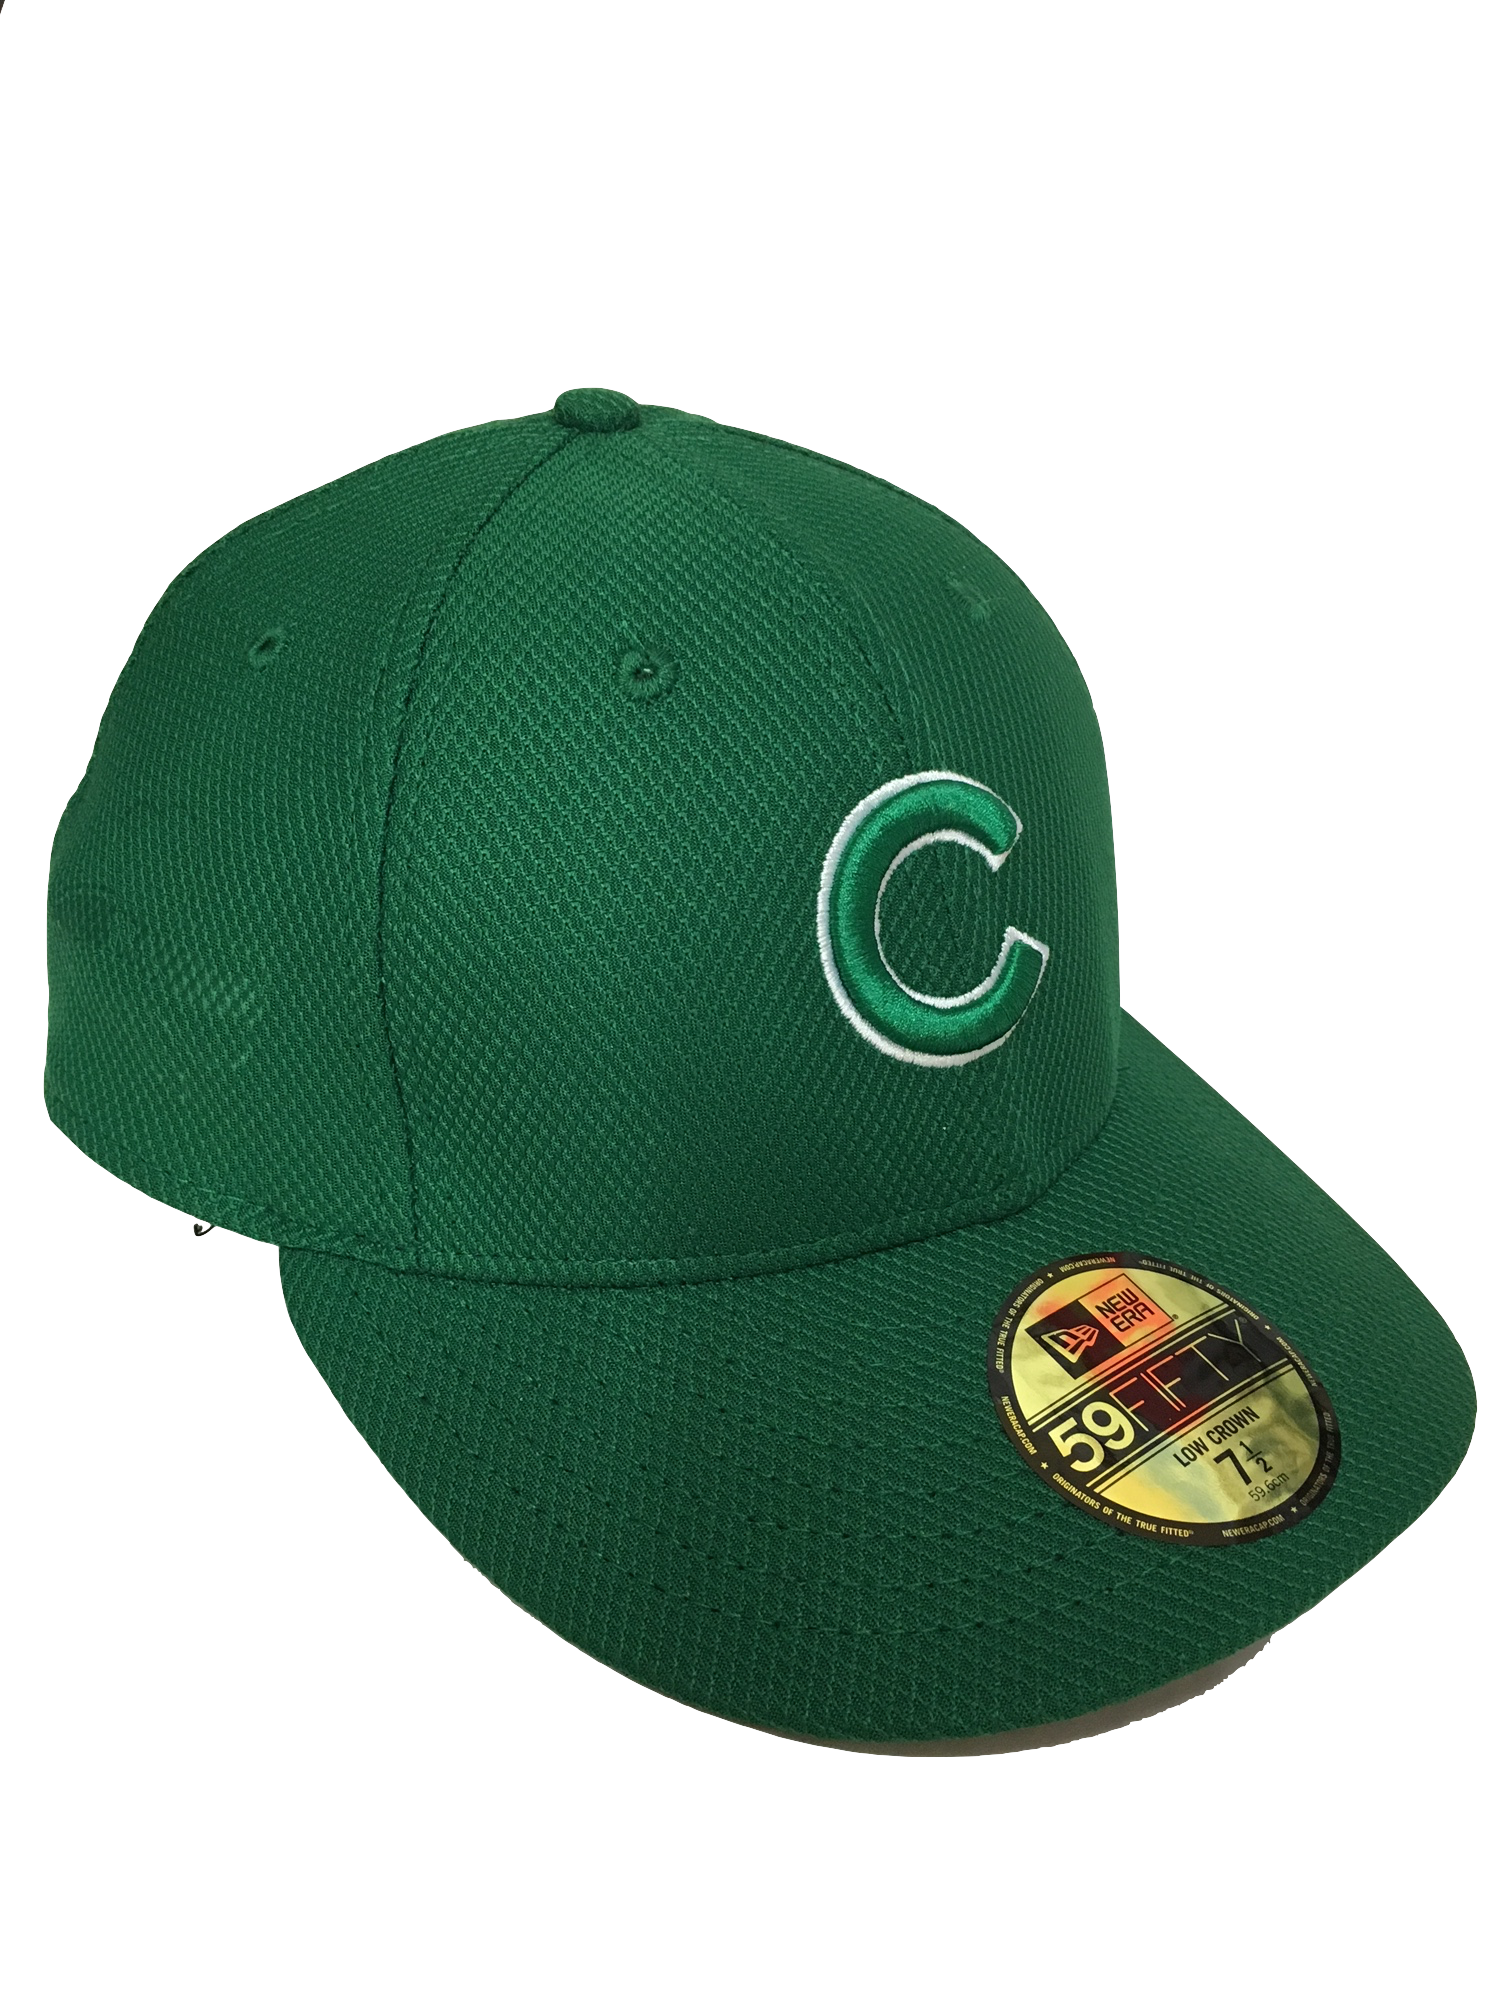 c963b476a48e2 ... amazon chicago cubs kelly green diamond era low crown 59fifty fitted  hat b7d8f 29e2a